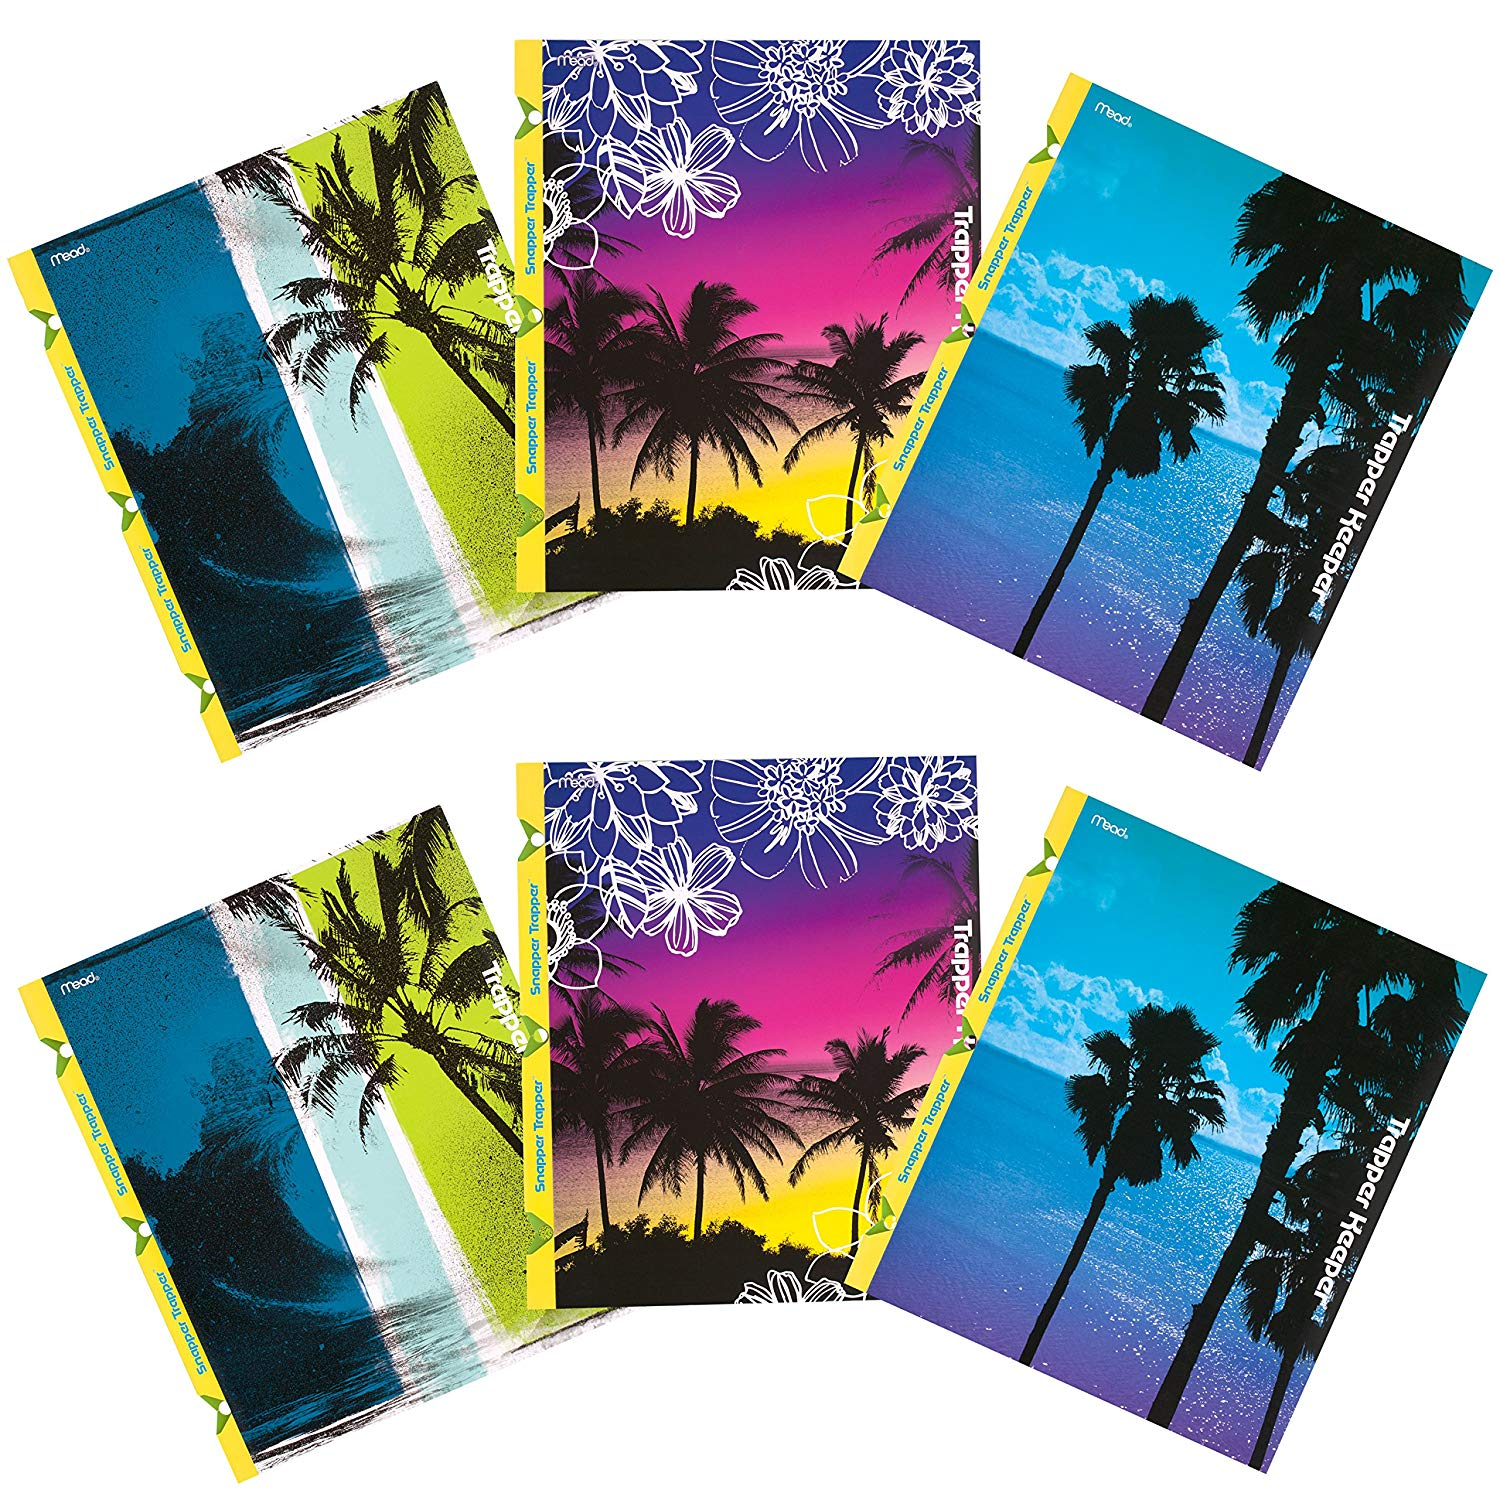 Mead Trapper Keeper Snapper Trapper 2-Pocket Folders, Fun in the Sun, Assorted Designs, 6 Pack (73431)